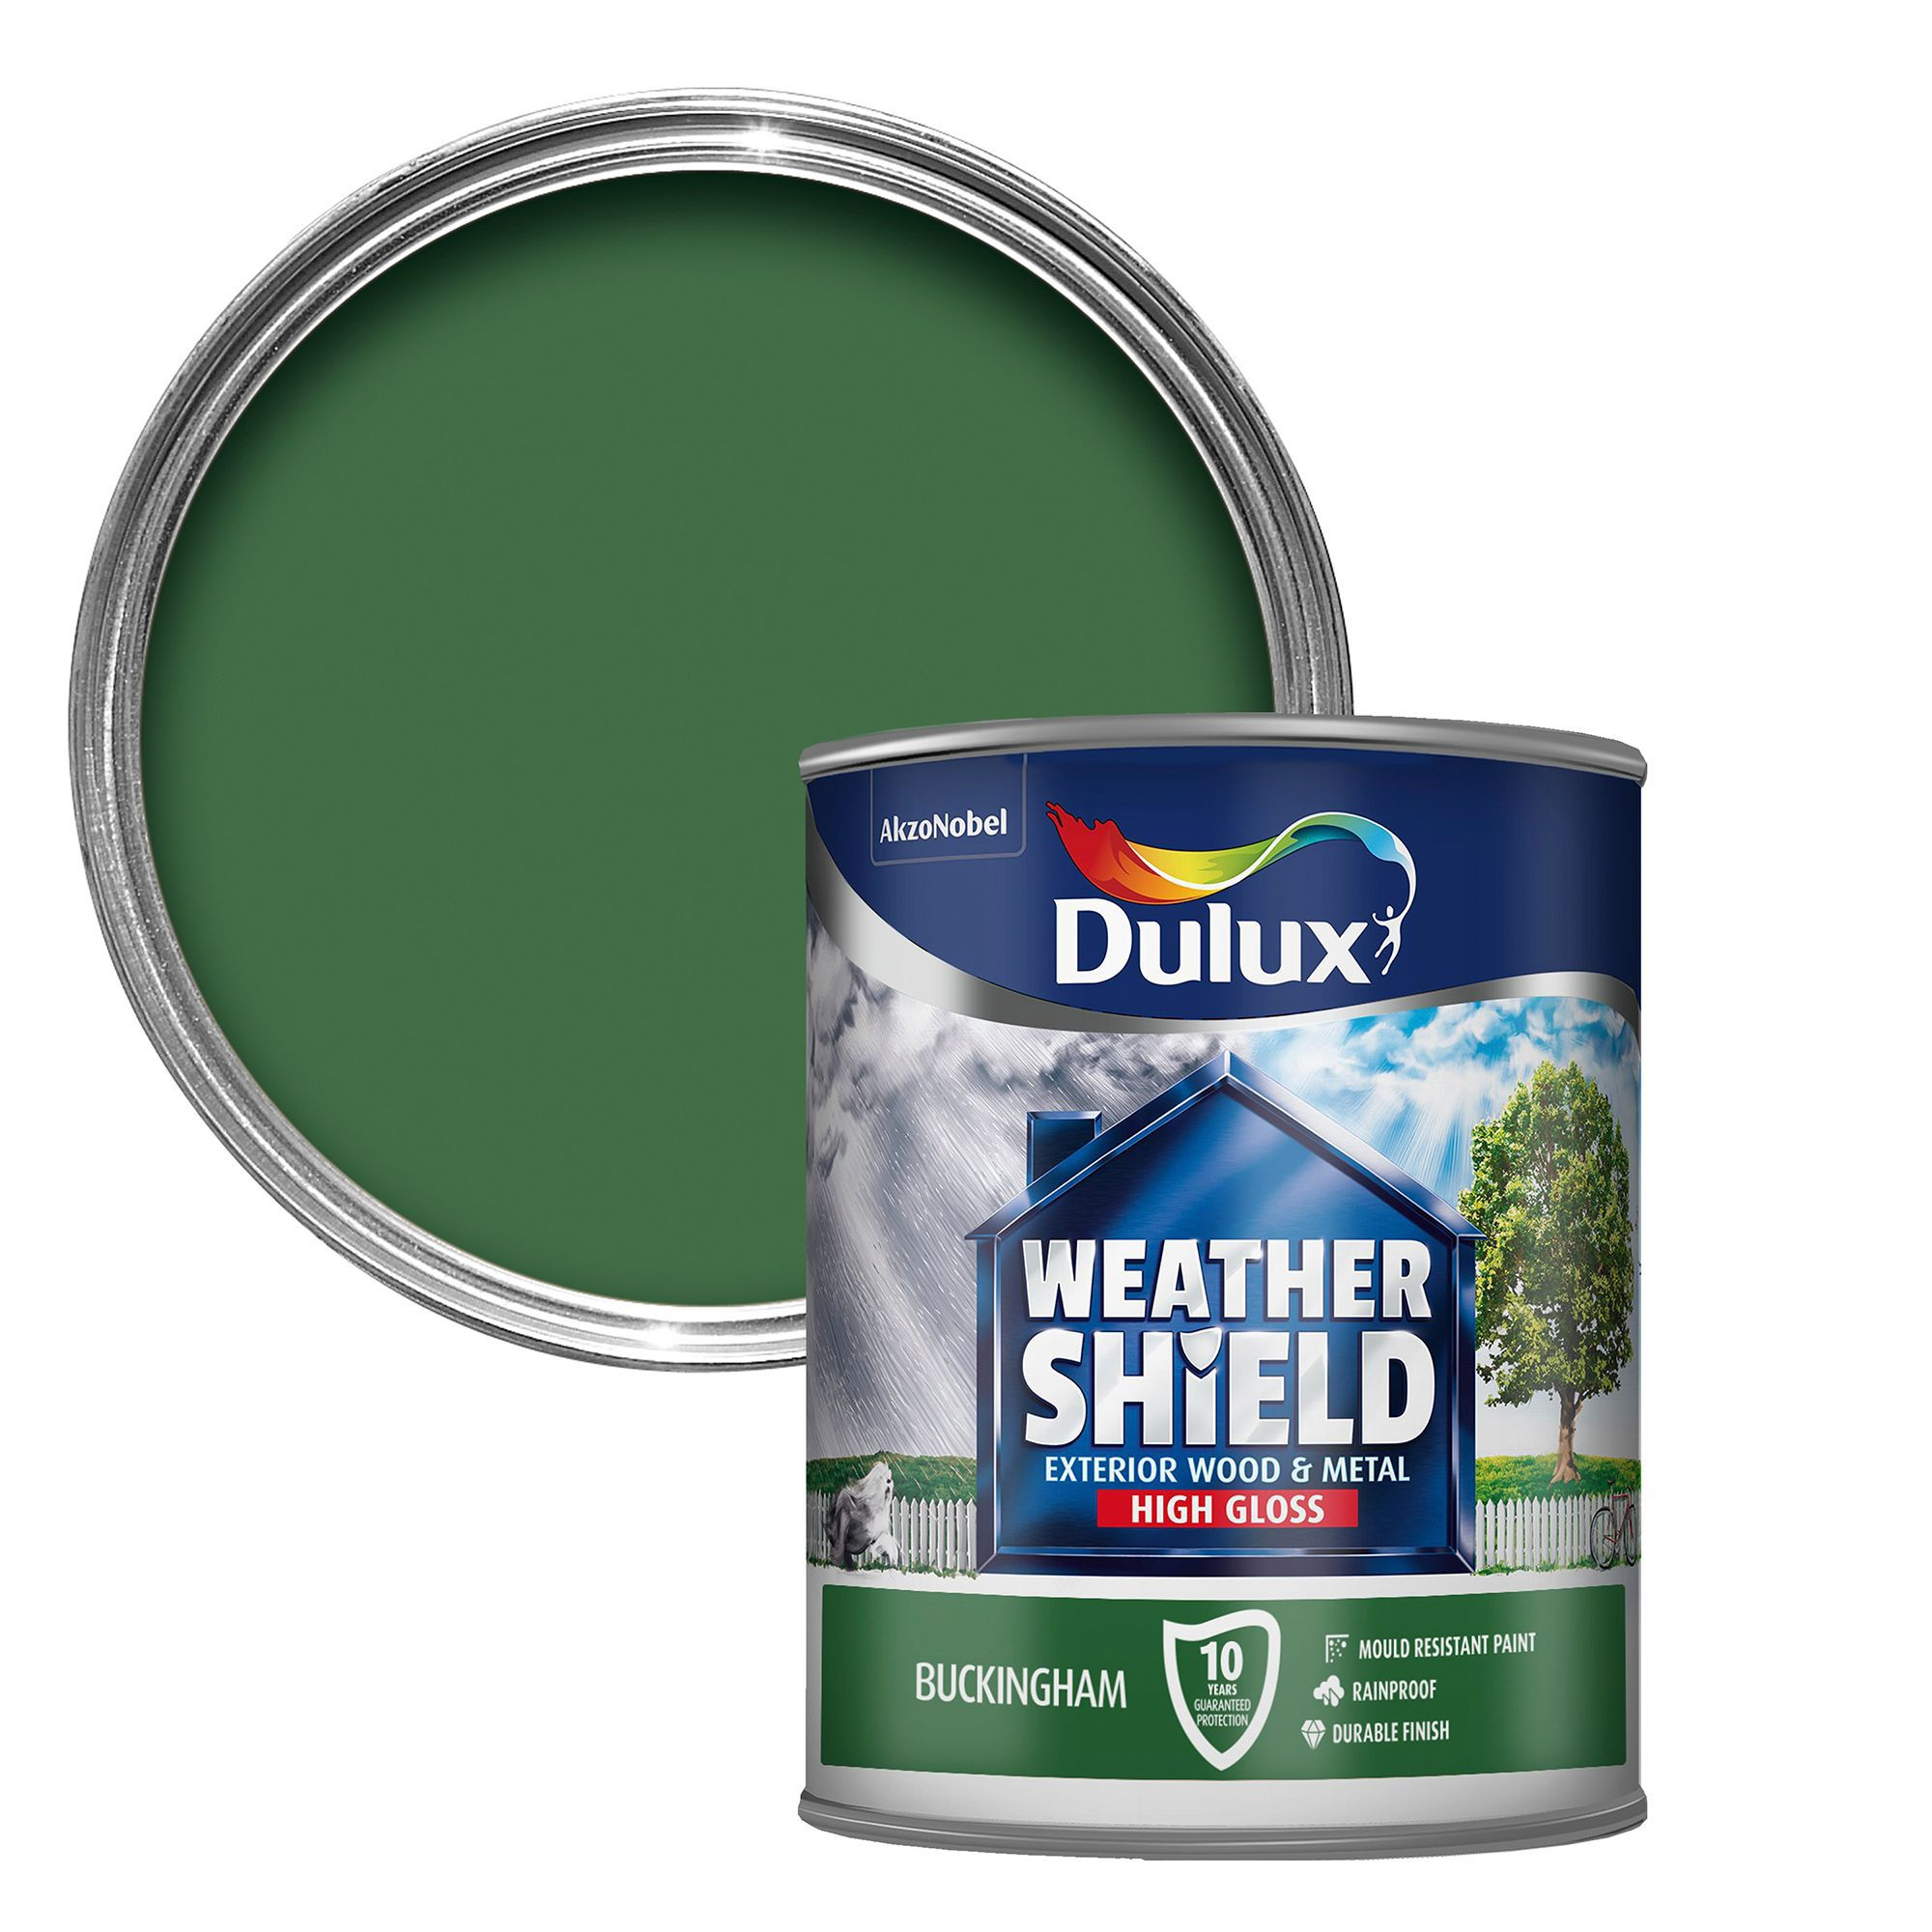 Dulux weathershield exterior buckingham green gloss wood metal paint 750ml departments diy - Exterior wood and metal paint set ...